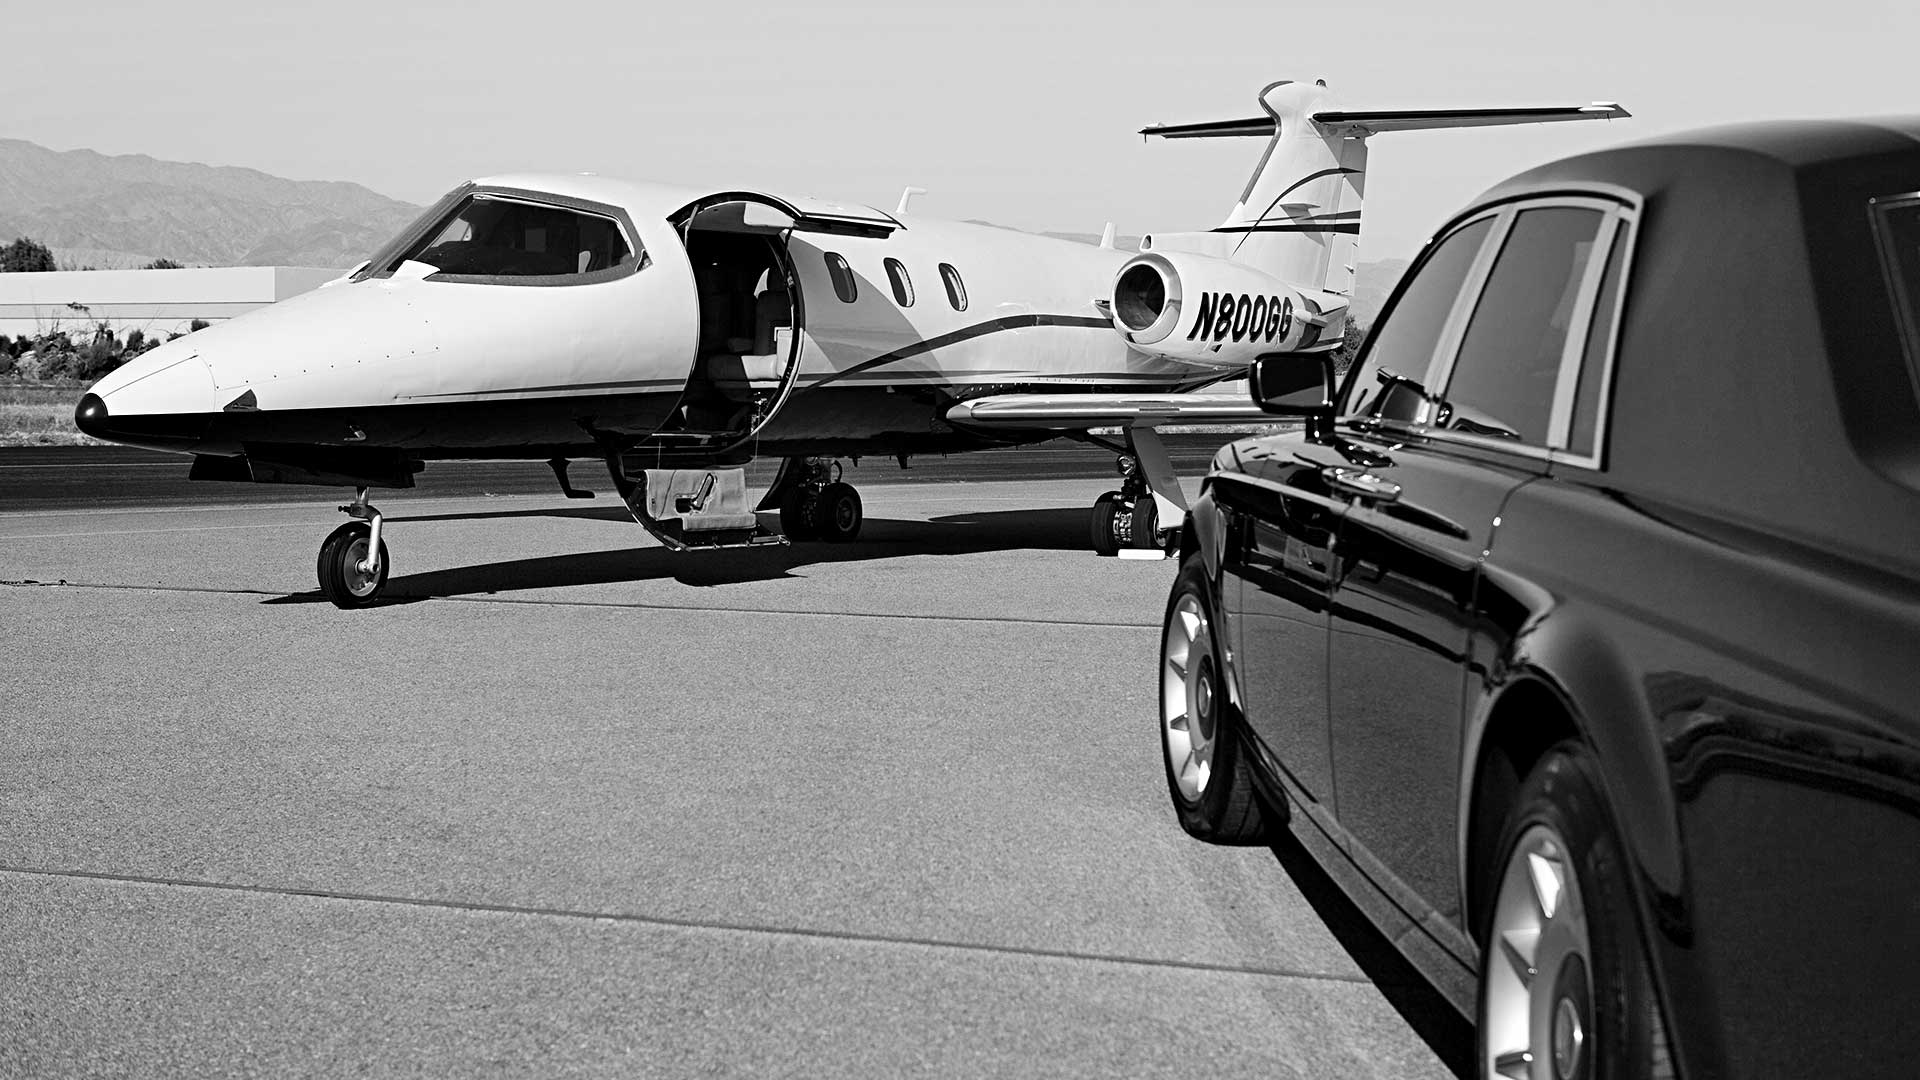 Chicago Airport Limo and Car Service Transportation, O'Hare, Midway, Limo Ride Shuttle